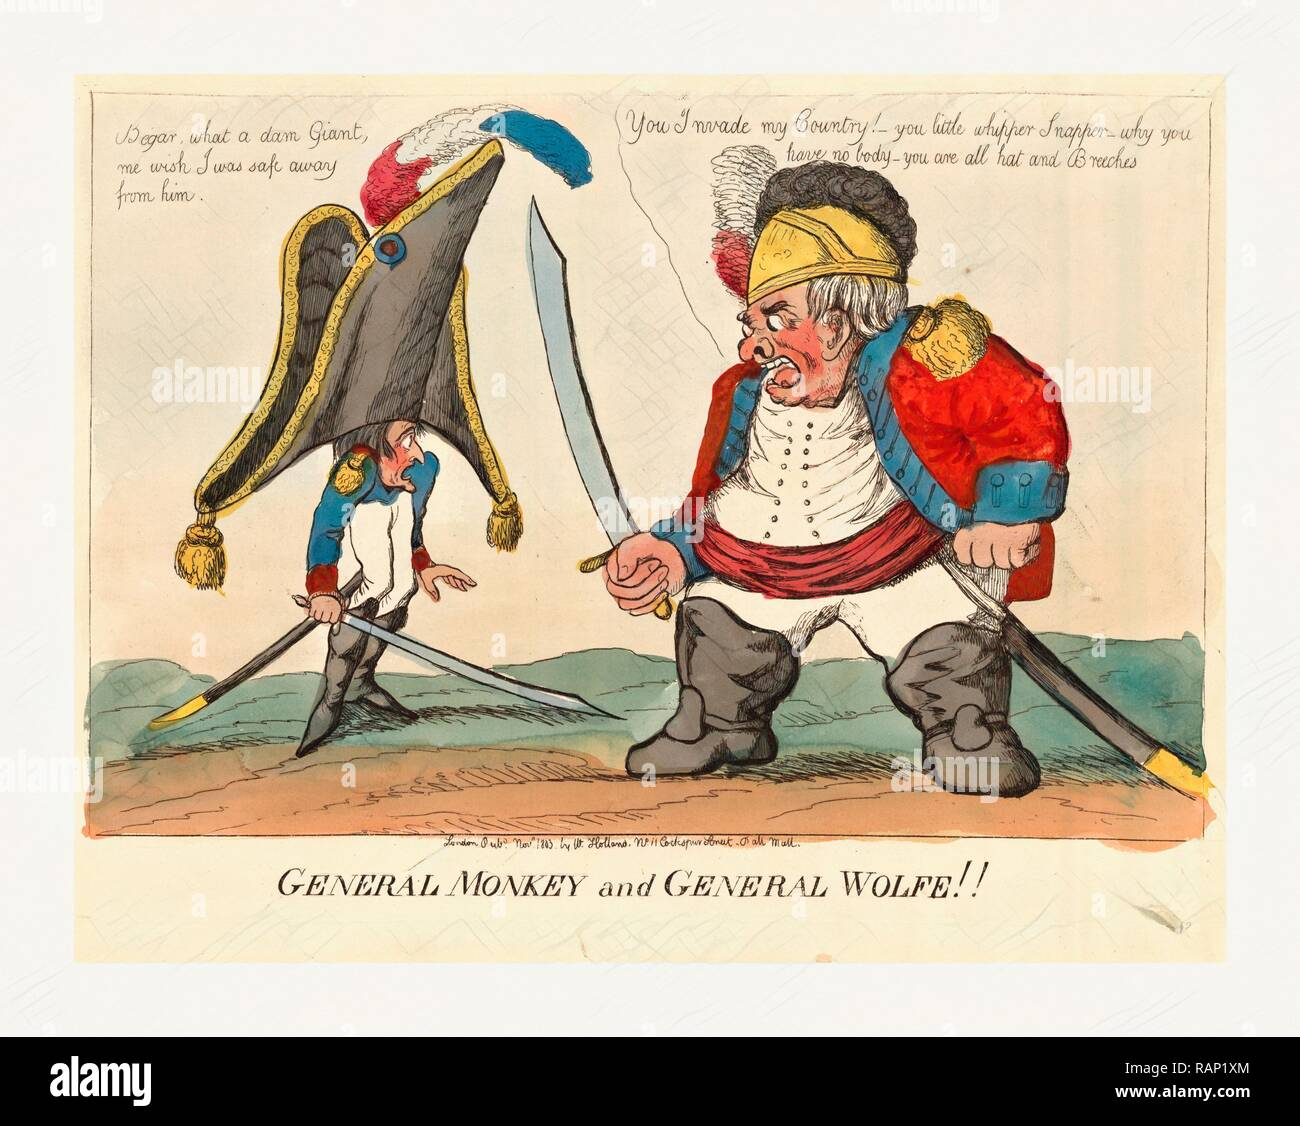 General Monkey and General Wolfe, Holland, William, active 1782-1817, engraving 1803, Napoleon I, wearing a large hat reimagined - Stock Image